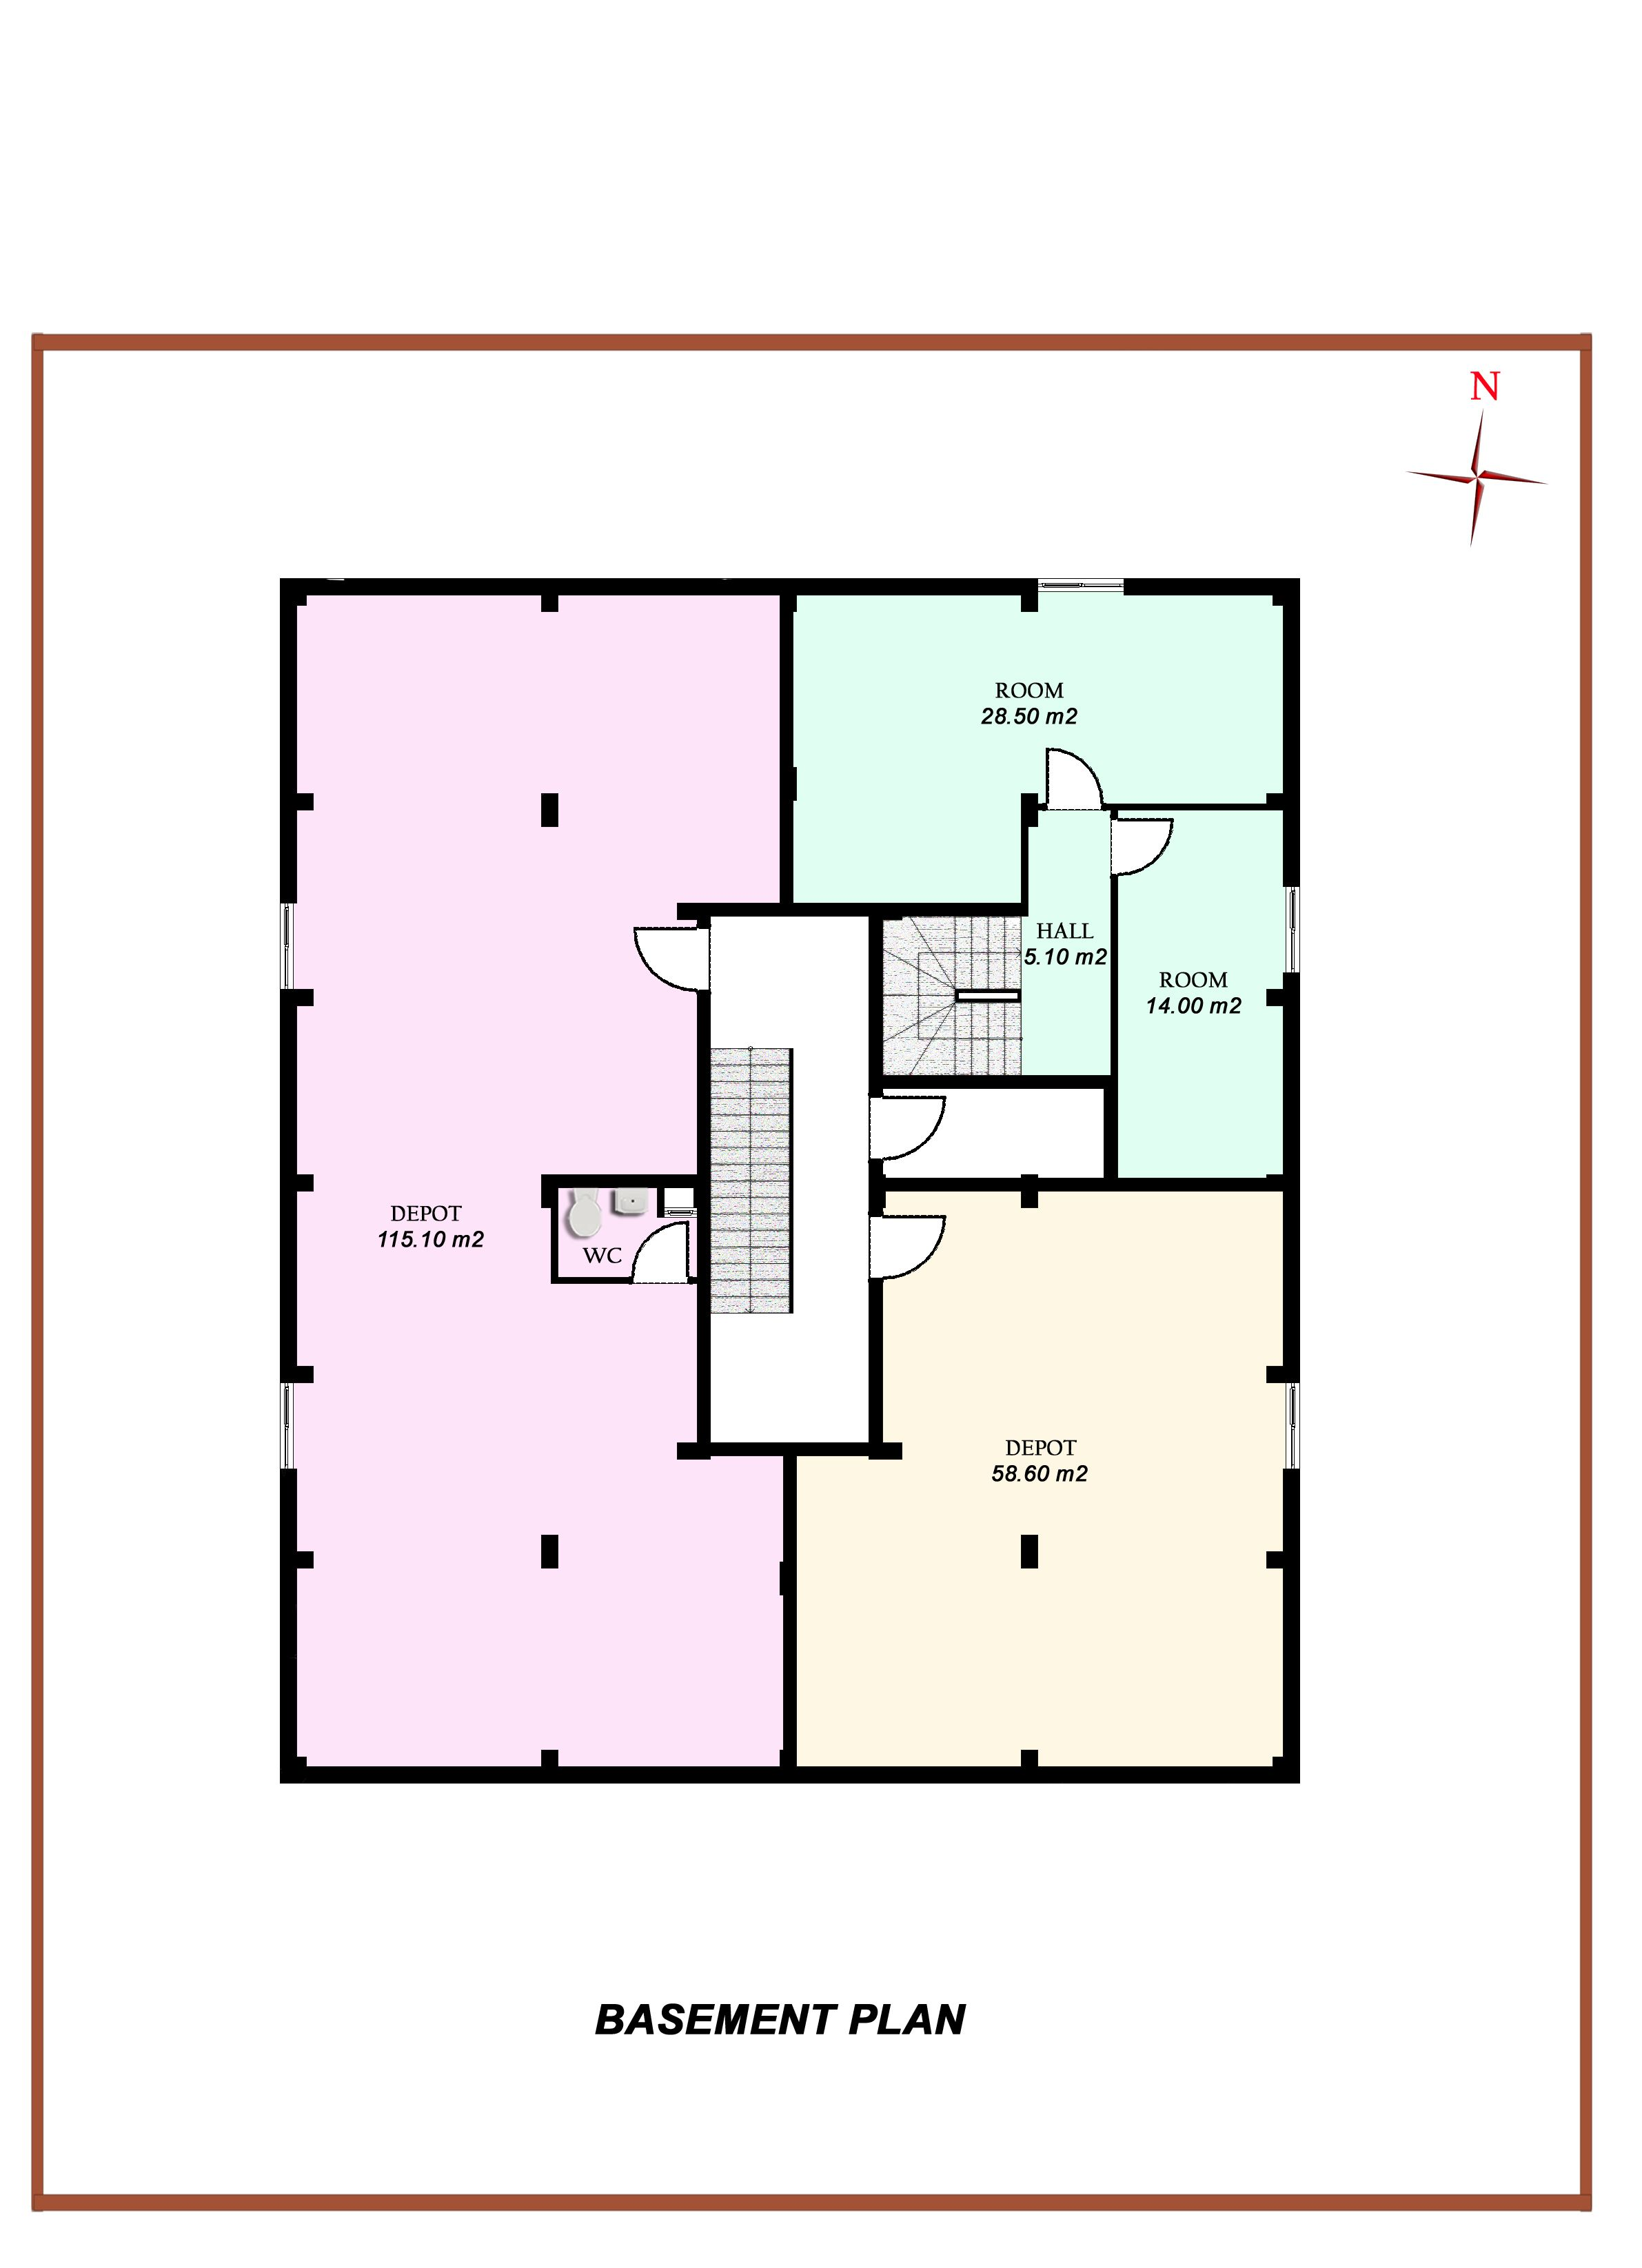 Basement floor plans, Apartment floor plans